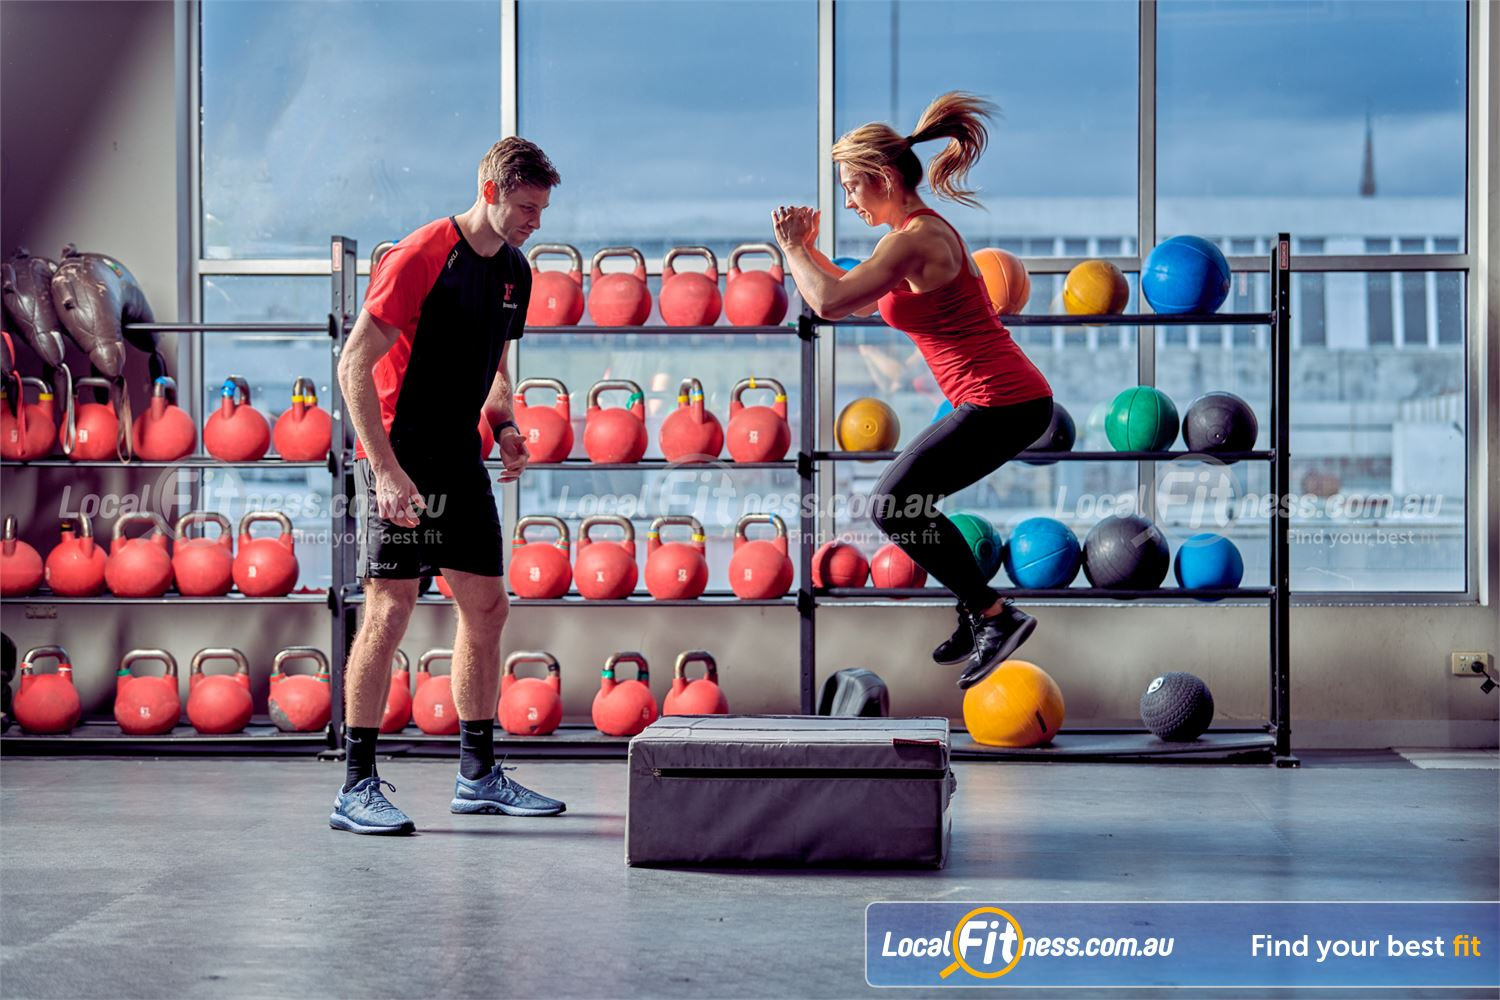 Fitness First Near West Pennant Hills Our Carlingford gym is fully equipped for functional workouts.